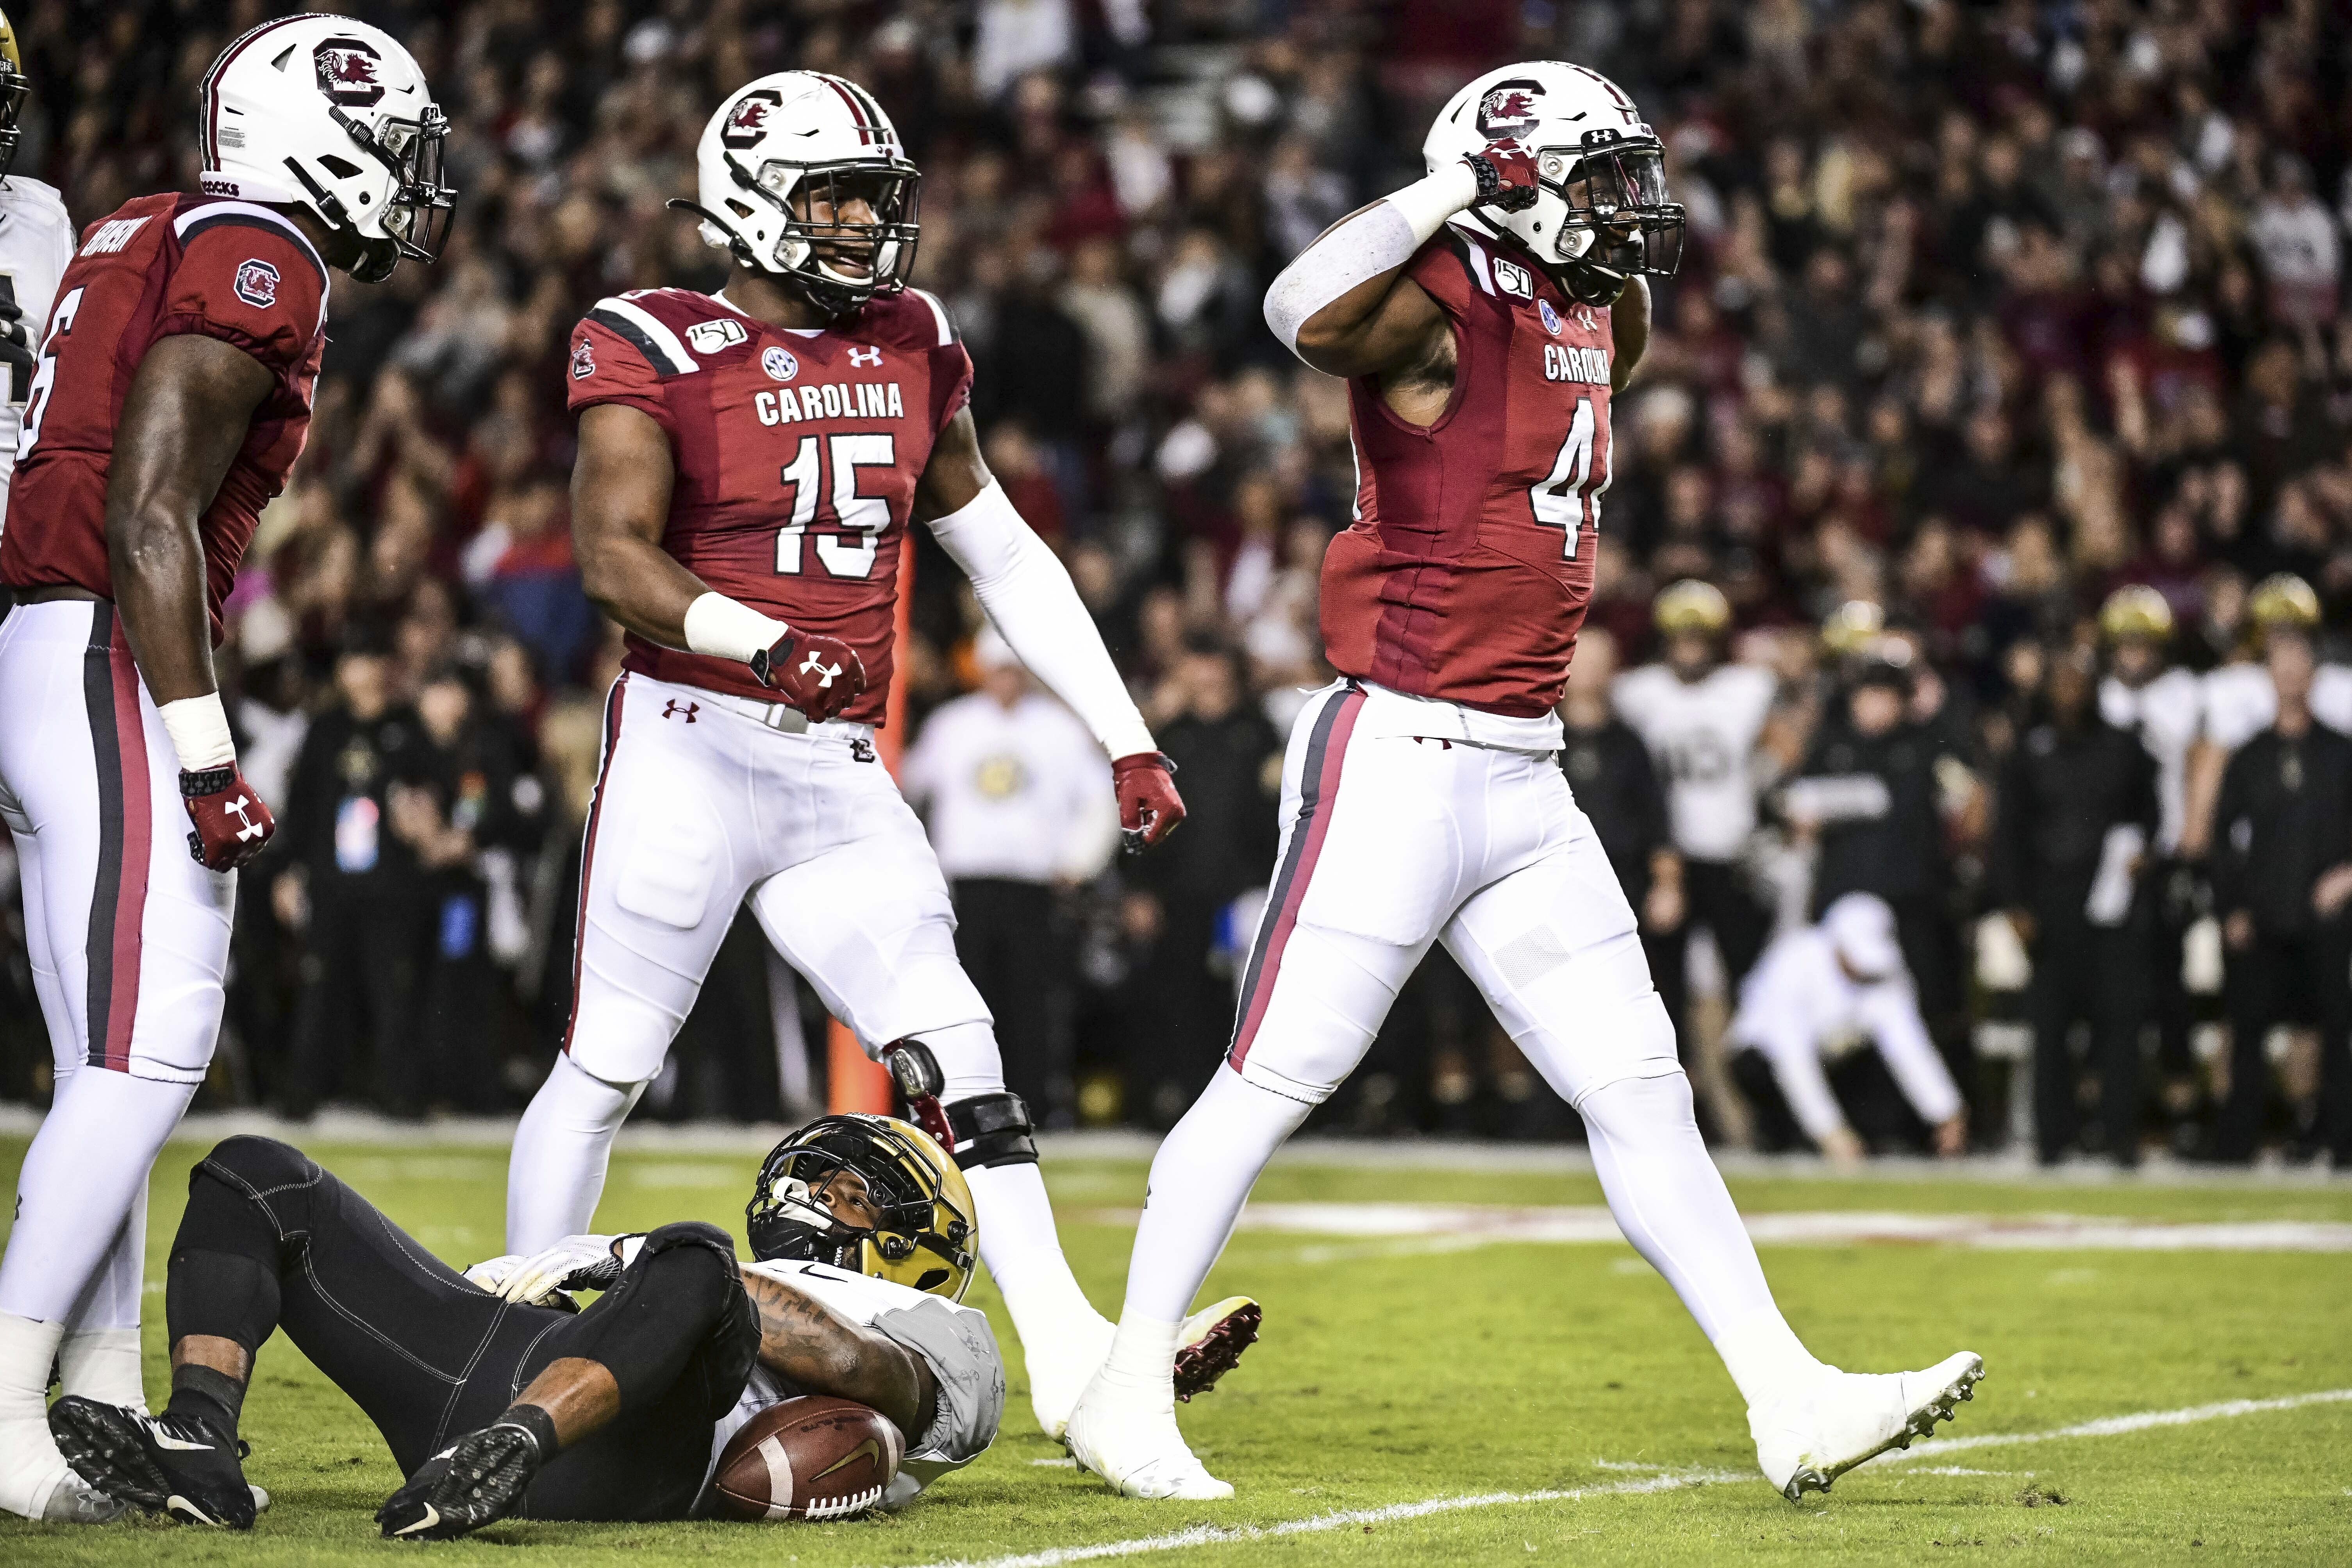 Gamecocks visit Texas A&M coming off tough loss